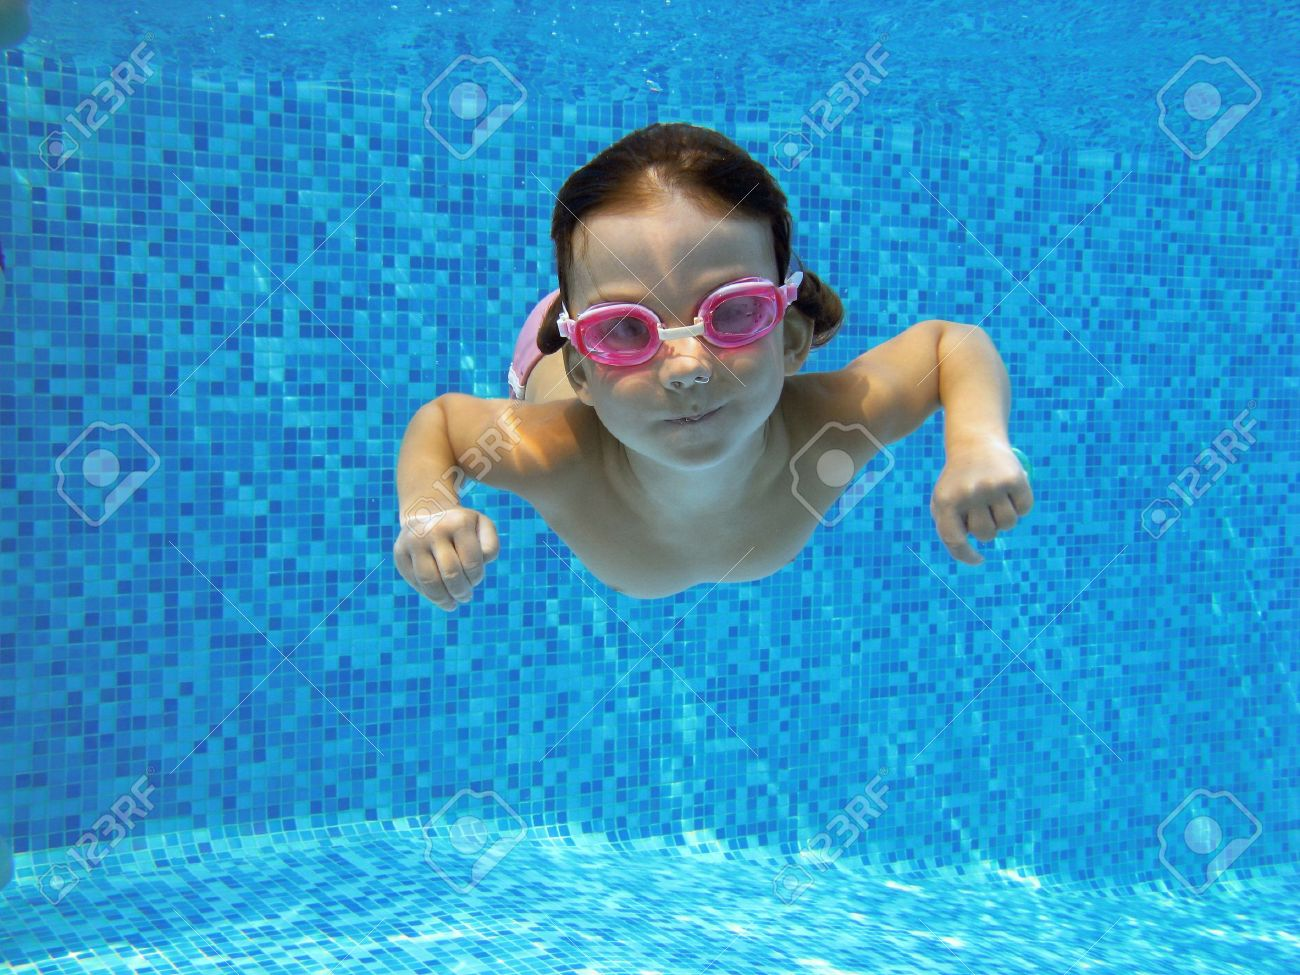 Kid Swimming Underwater In The Pool Stock Photo Picture And